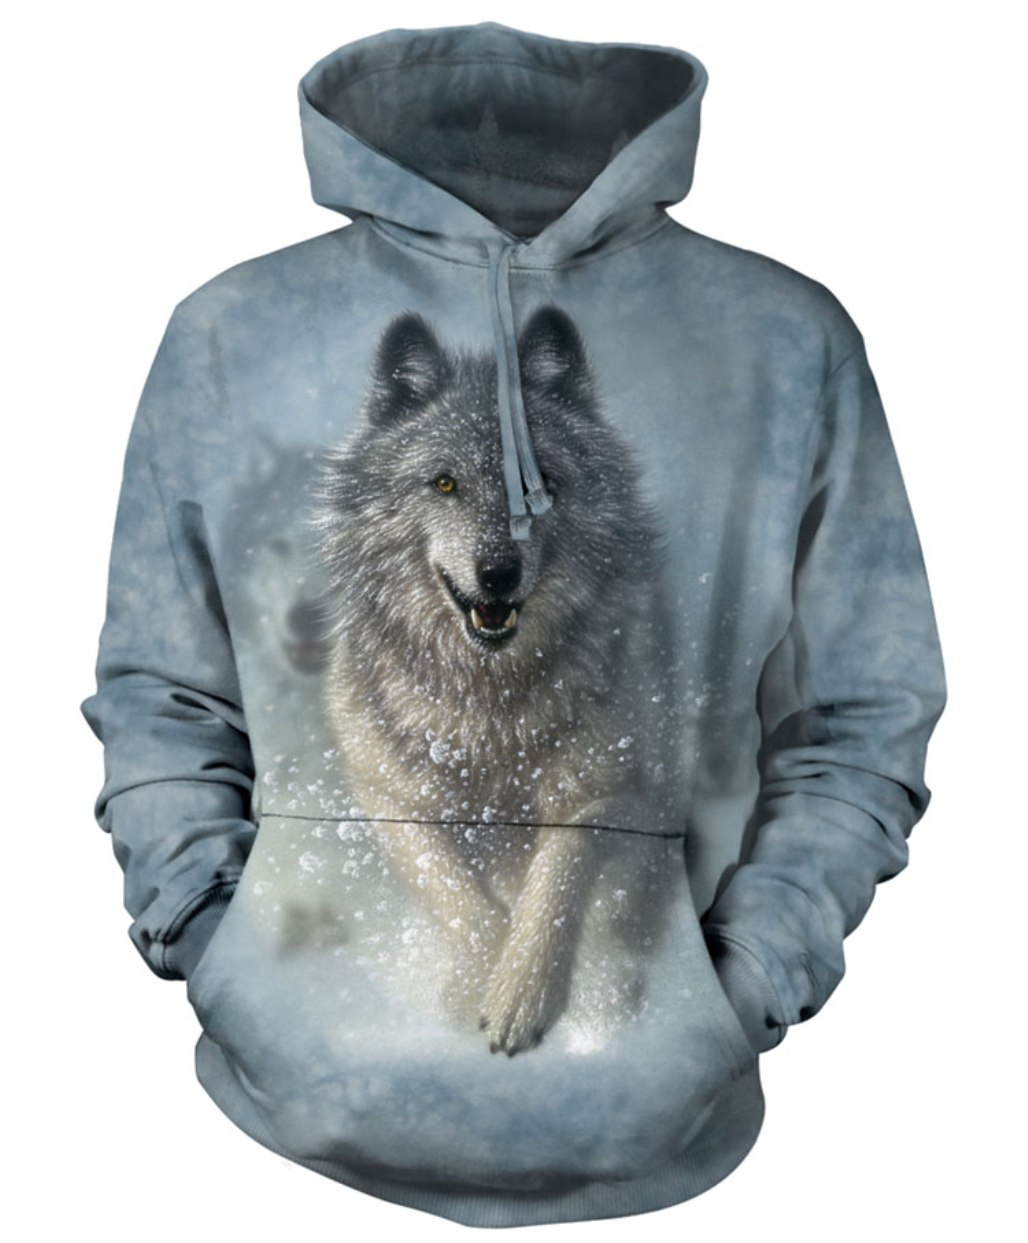 White Cotton Snow Plow Awesome Animal Hoodie Cool (Medium) New by The Mountain